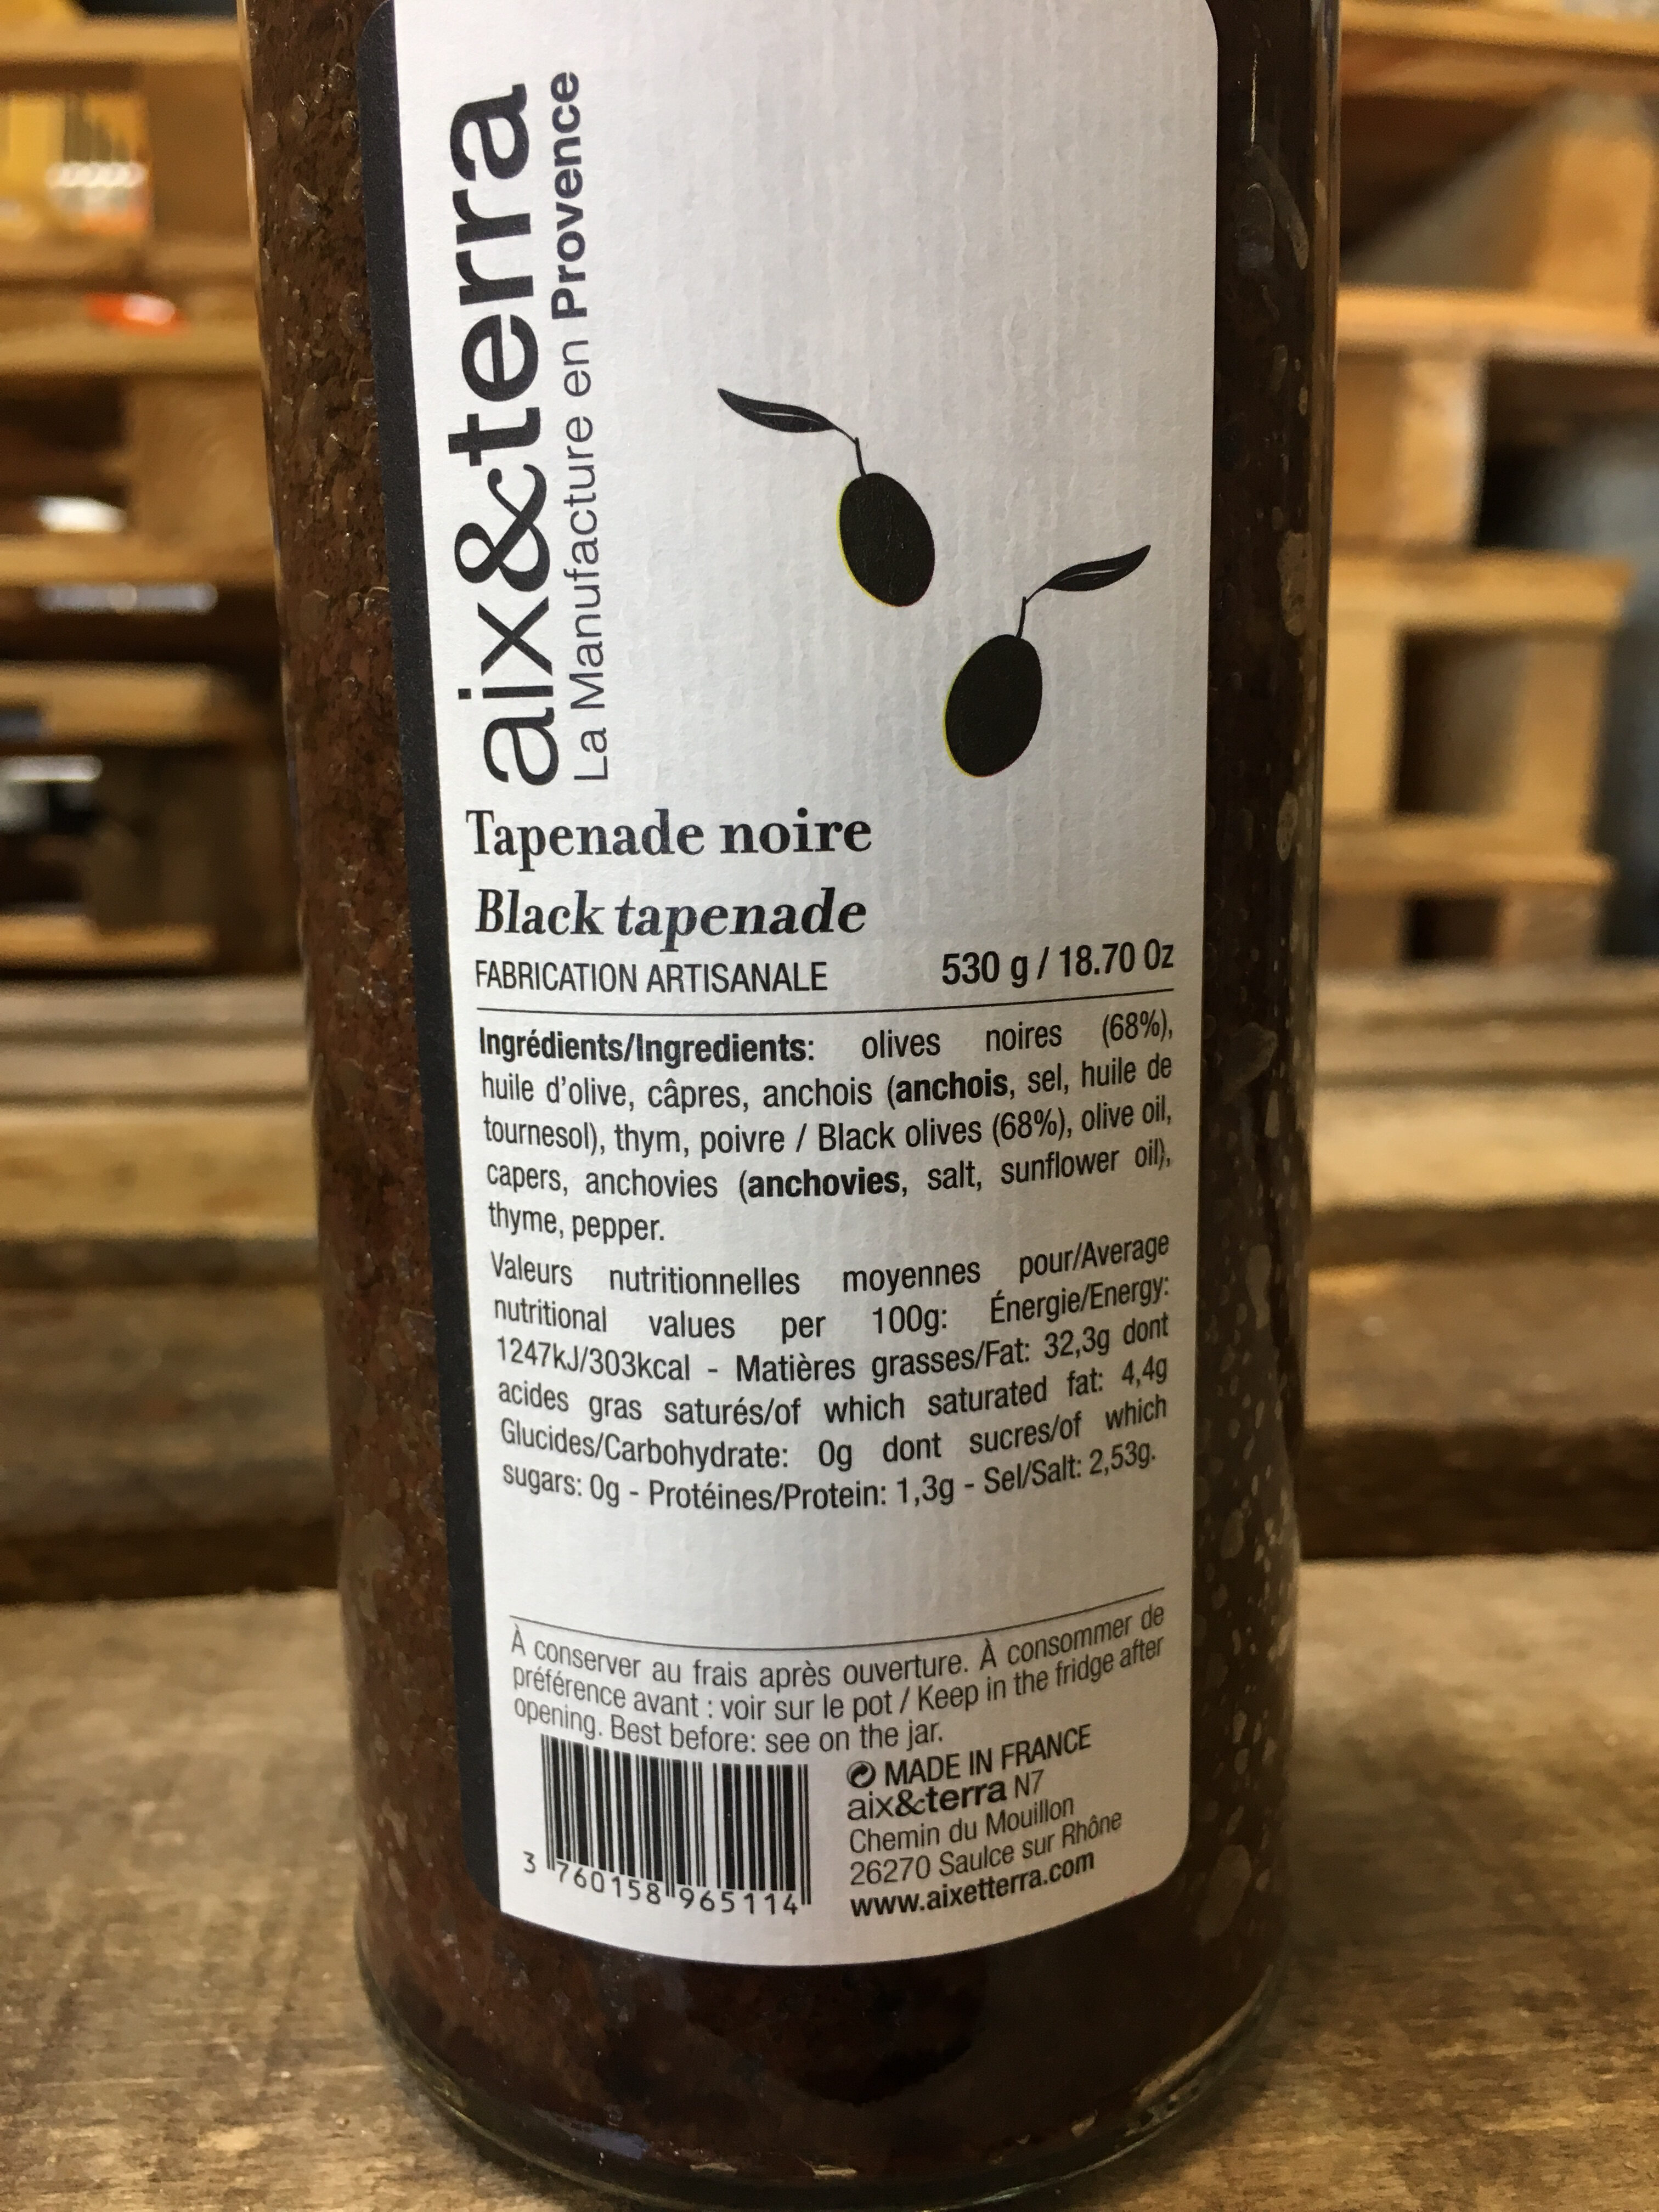 Tapenade noire - Nutrition facts